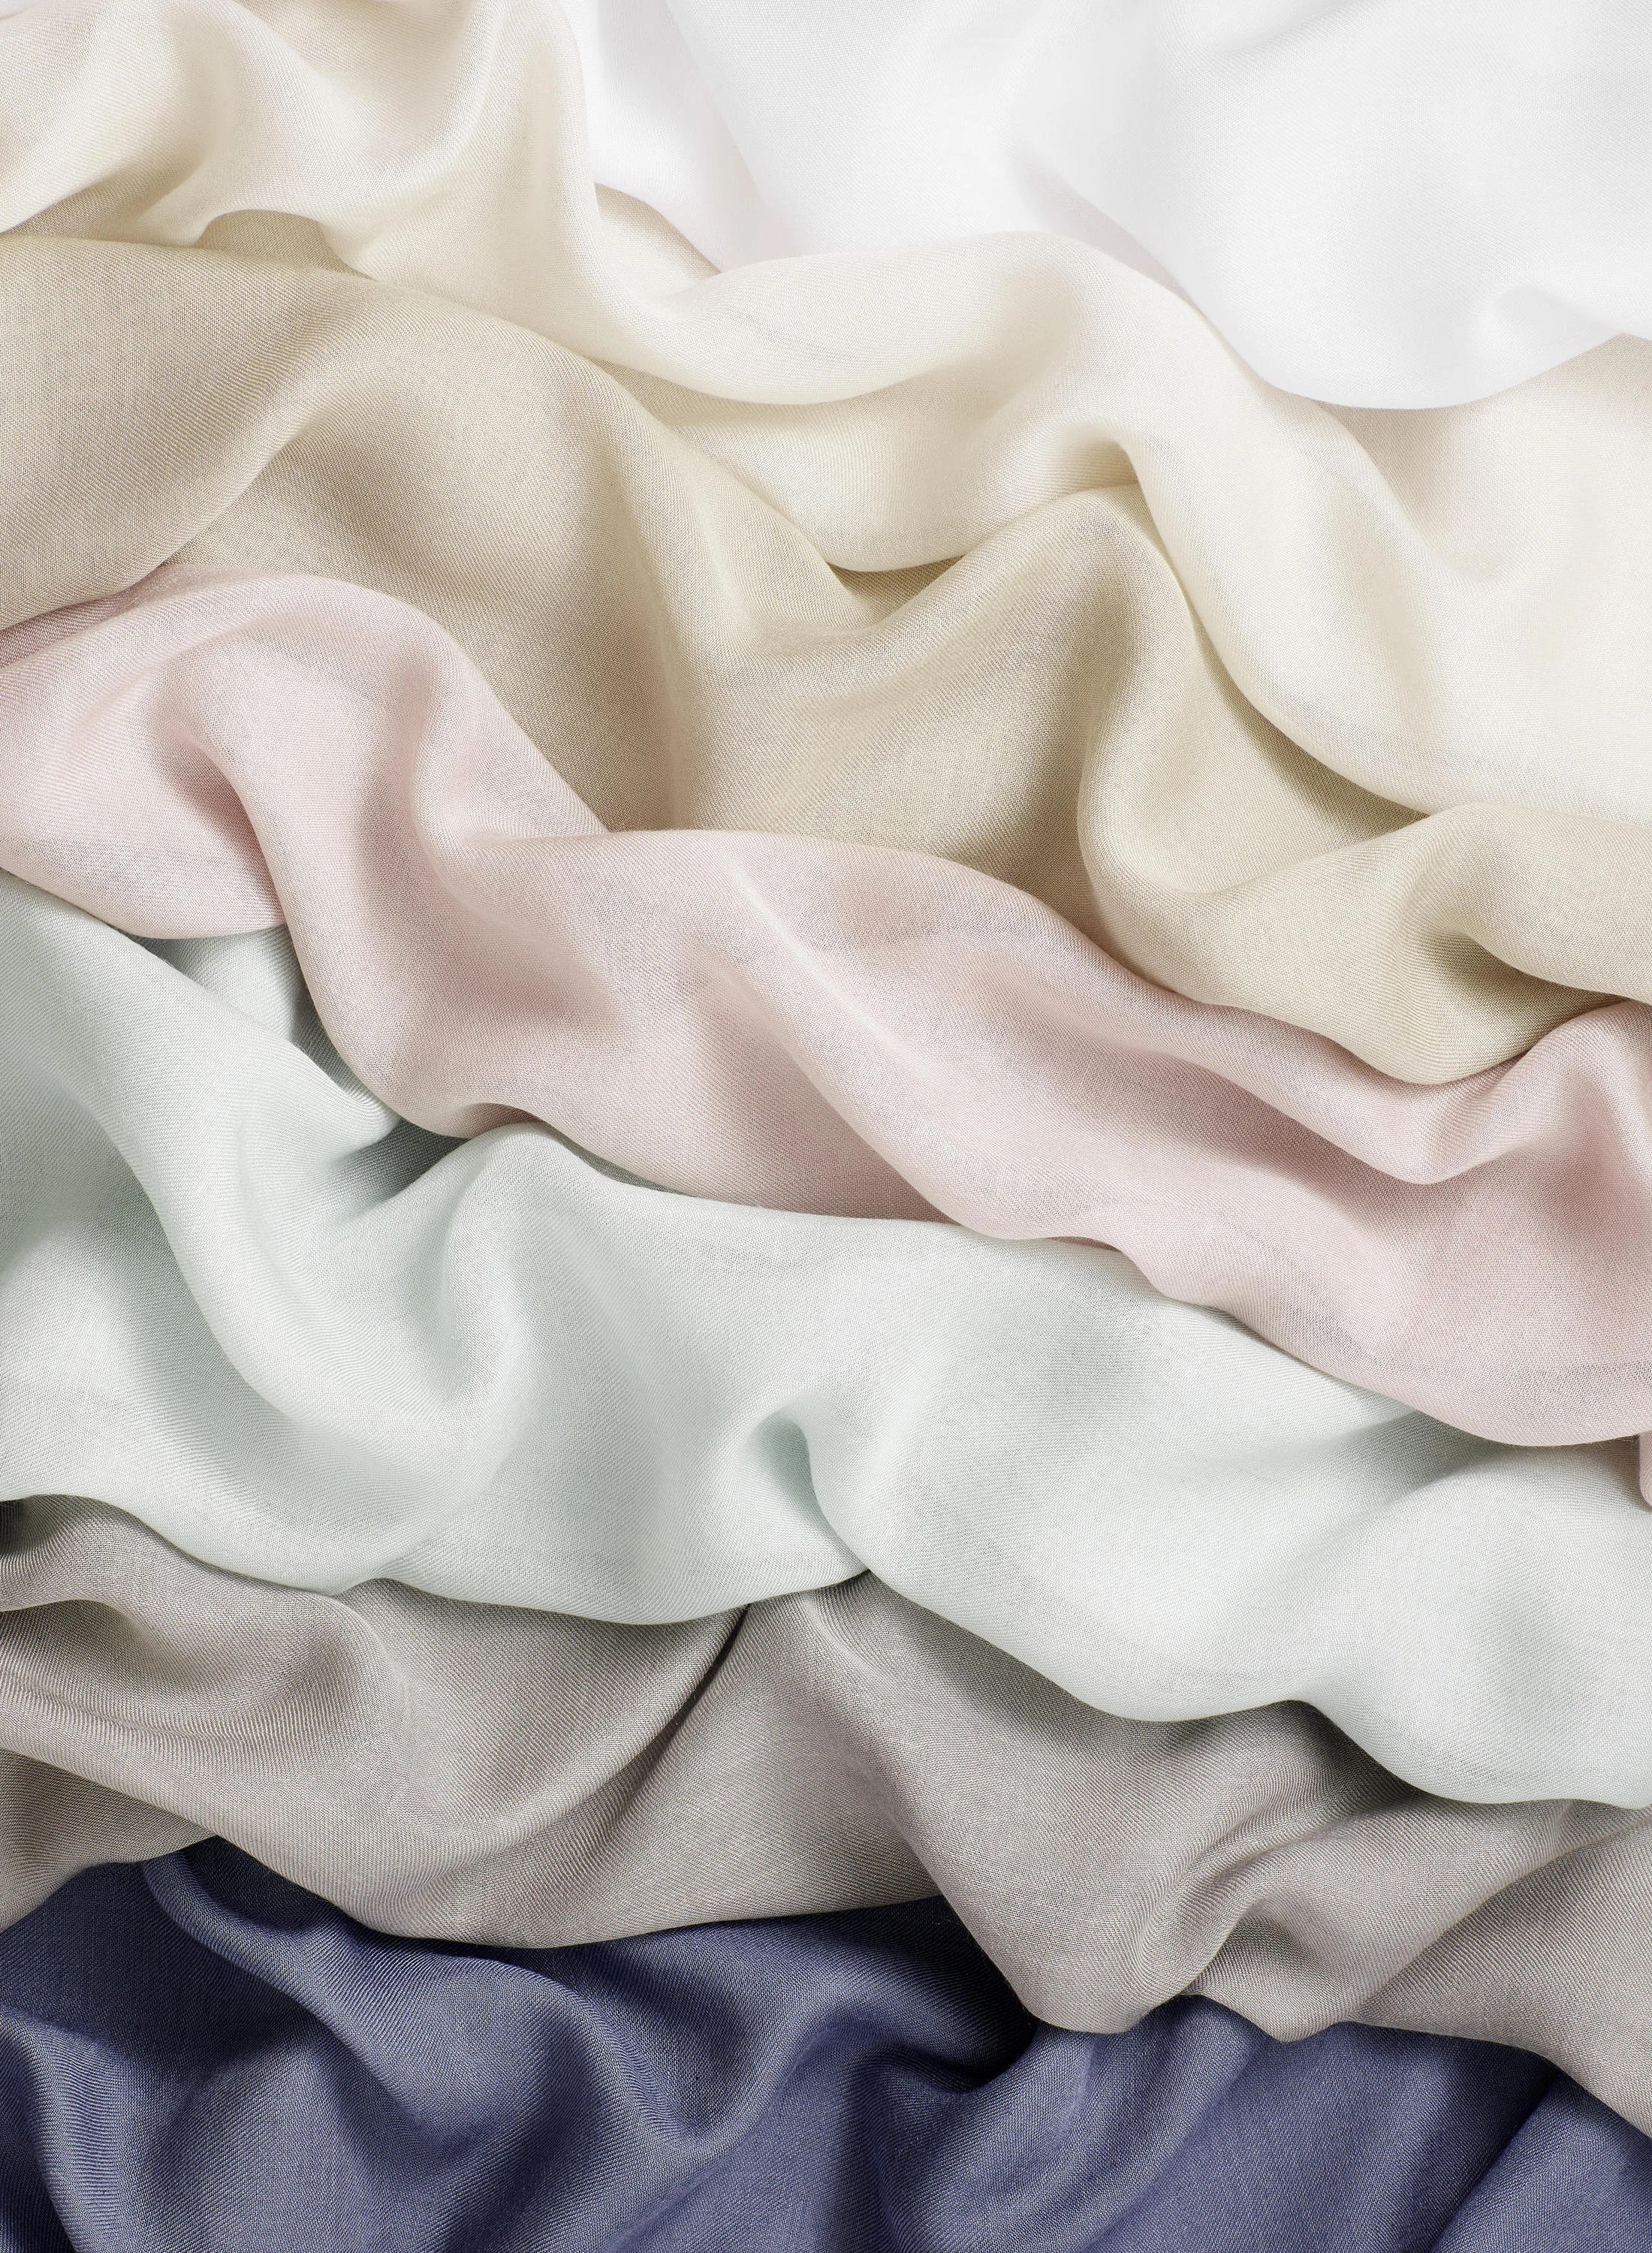 Sahco Hesslein Luxurious Viscose Cashmere Sheer Fabric Double Width Donghia Sahco Hesslein Available By The Yard